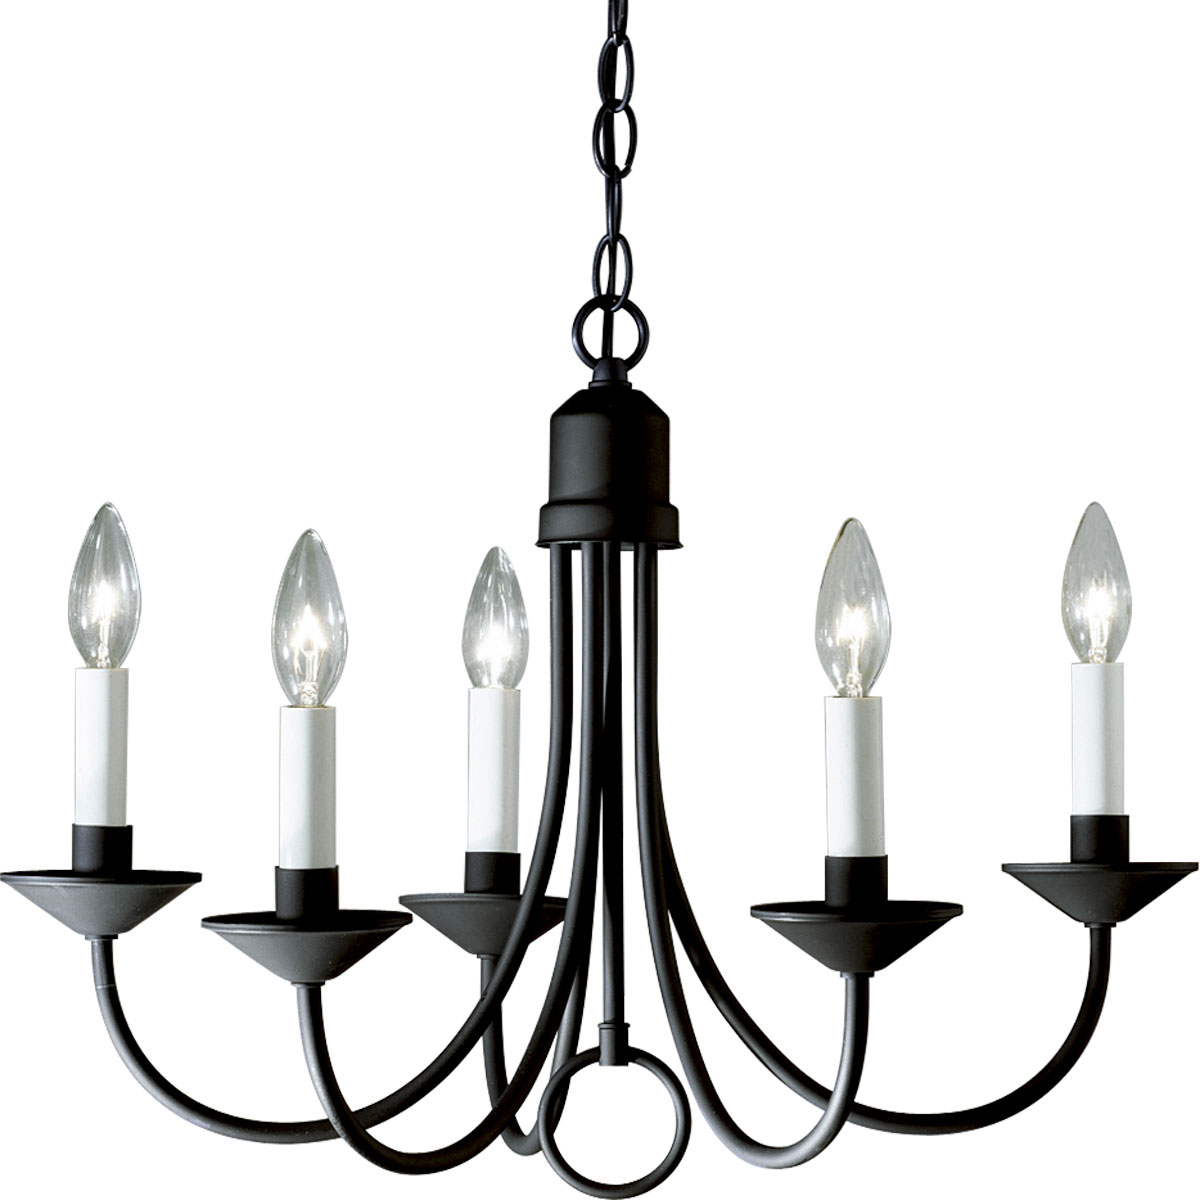 Holt Lighting Depot. « »  sc 1 st  St. Louis Homes u0026 Lifestyles & Holt Lighting Depot | ST. LOUIS HOMES u0026 LIFESTYLES